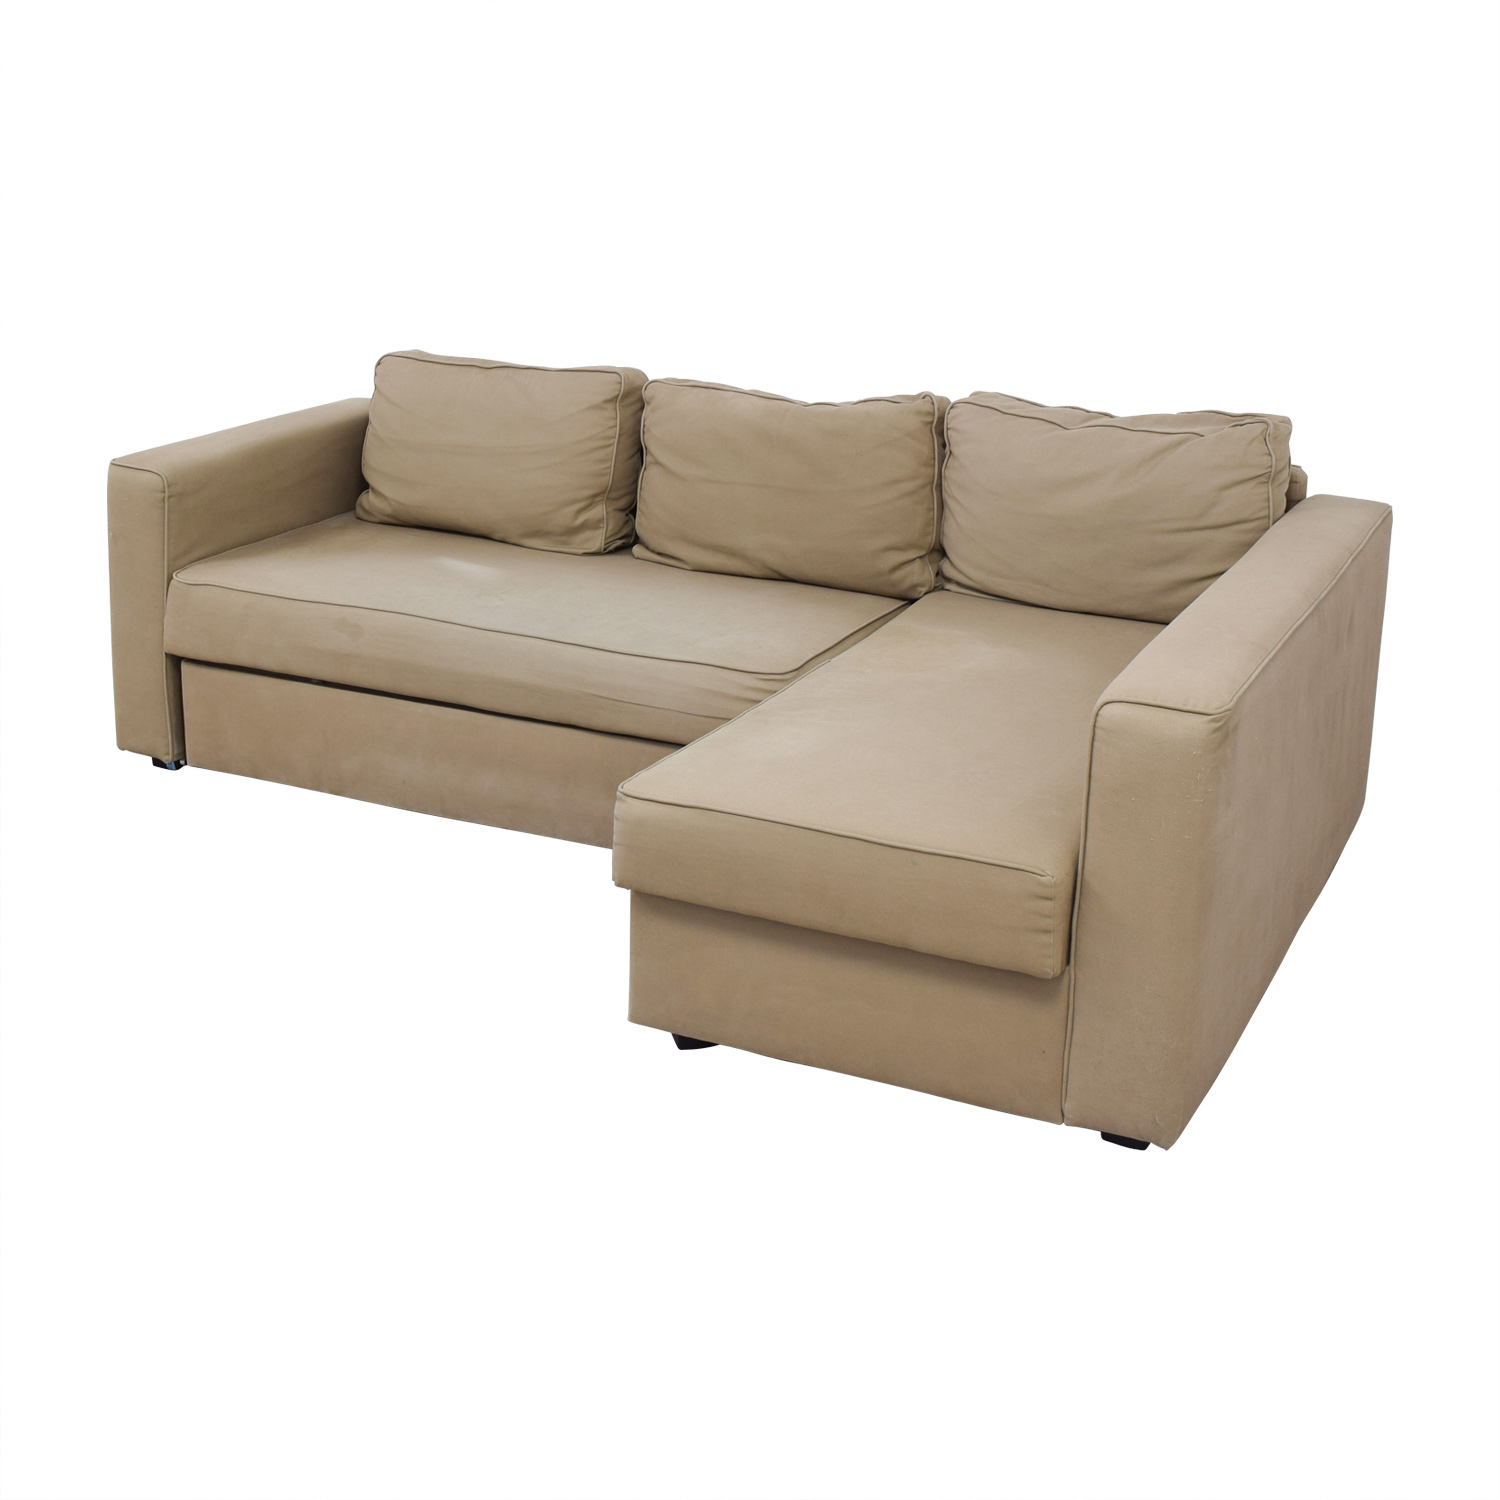 Ikea Sofa Bed 62 Off Ikea Ikea Manstad Sectional Sofa Bed With Storage Sofas